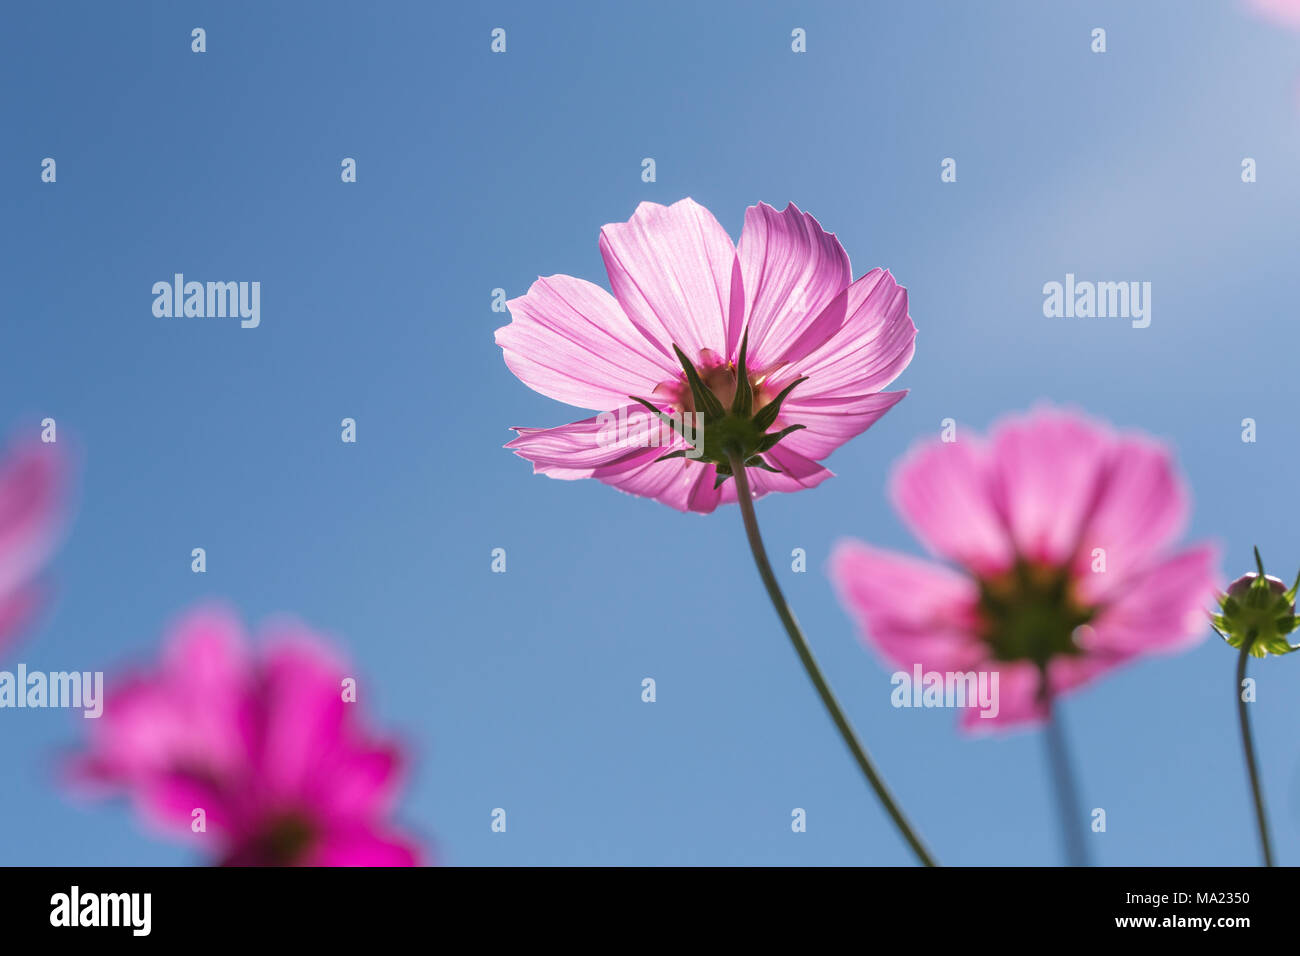 Close Focus On Pink Cosmos Flower With Transparent Petals Touching Sunlight Clear Blue Sky As Background